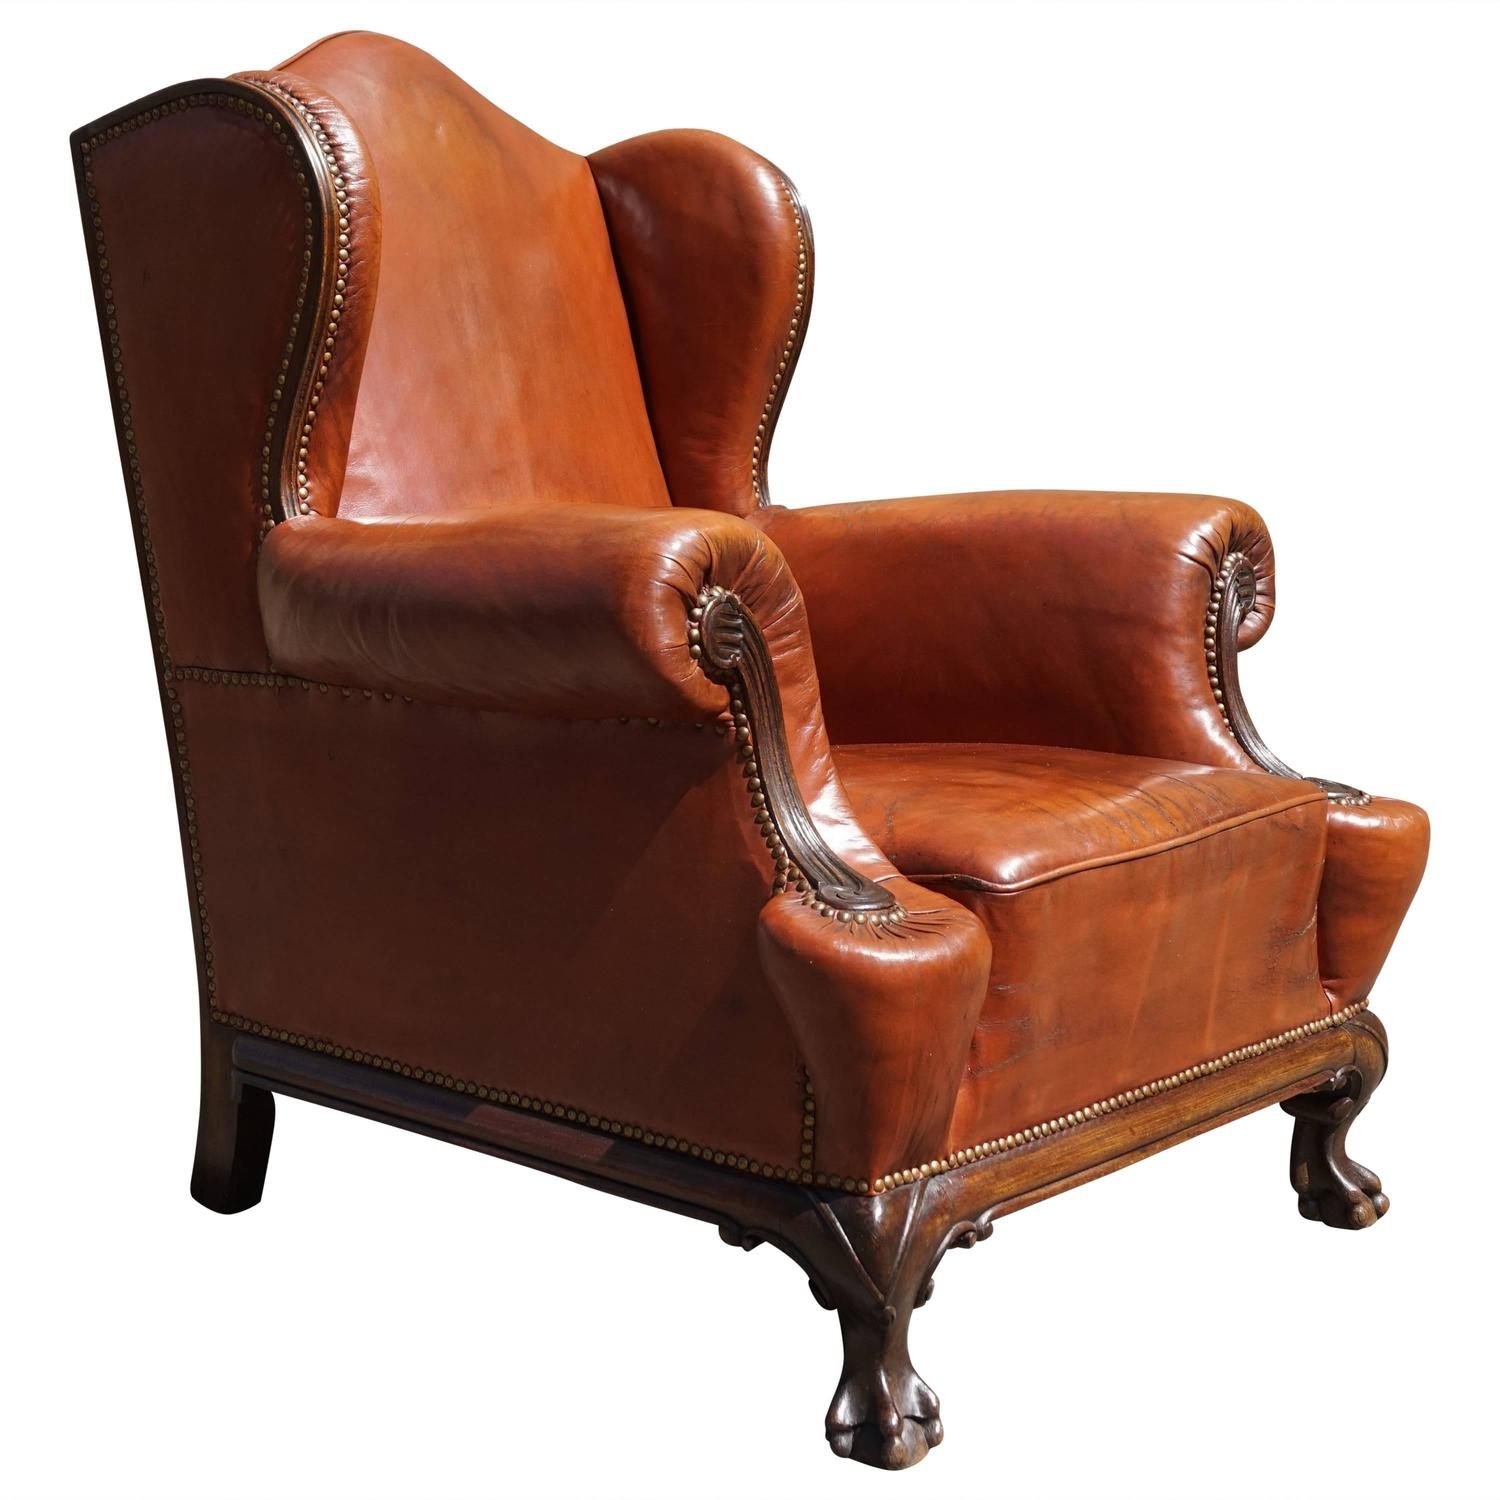 Antique Leather Chippendale Style Wingback Chair With Hand Carved Claw Feet